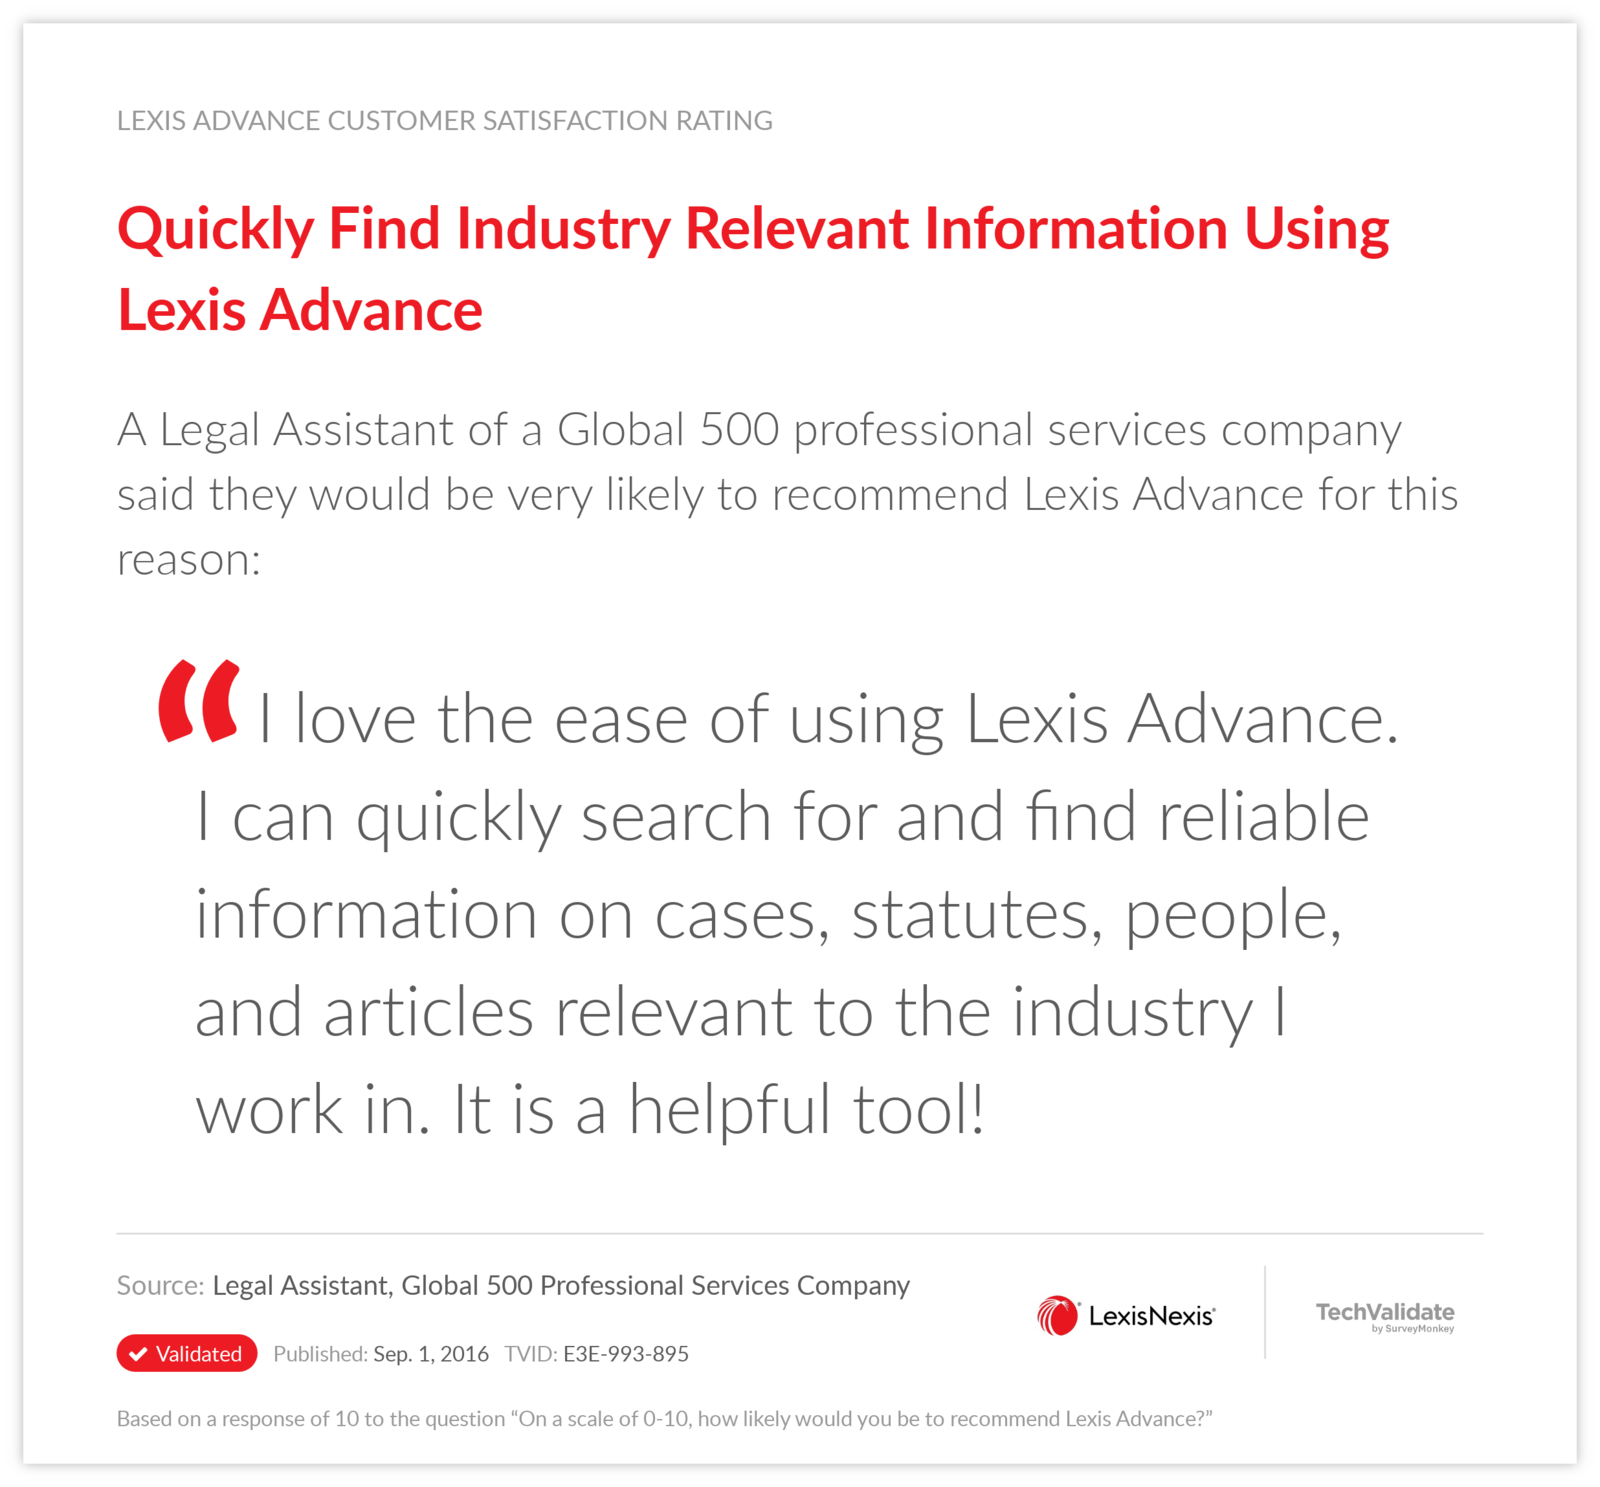 Quickly Find Industry Relevant Information Using Lexis Advance